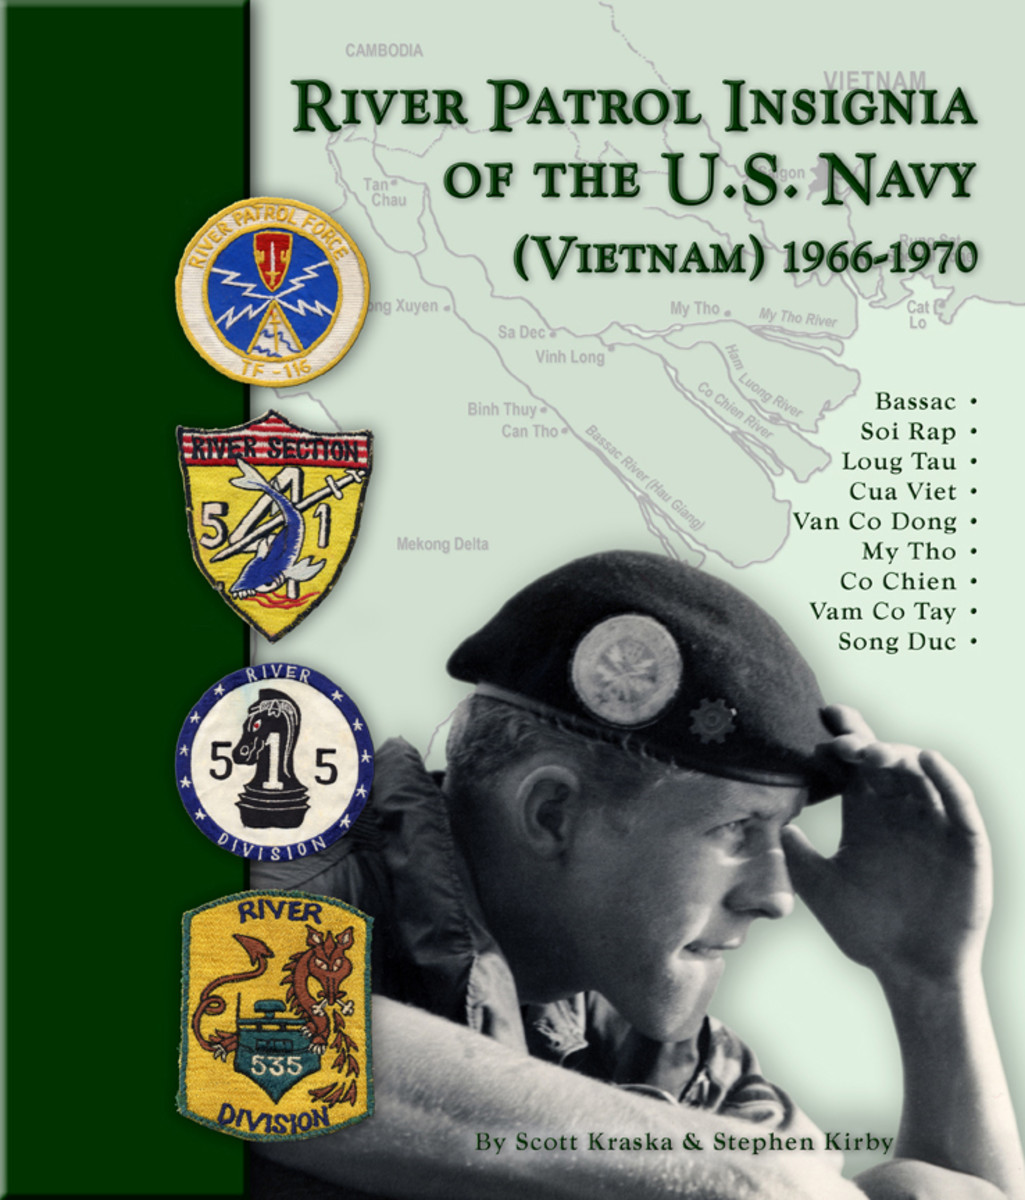 River Patrol Insignia of the U.S. Navy (Vietnam) 1966-1970 is unusual in that 99% of what is illustrated was collected directly from veterans. It is available through Amazon